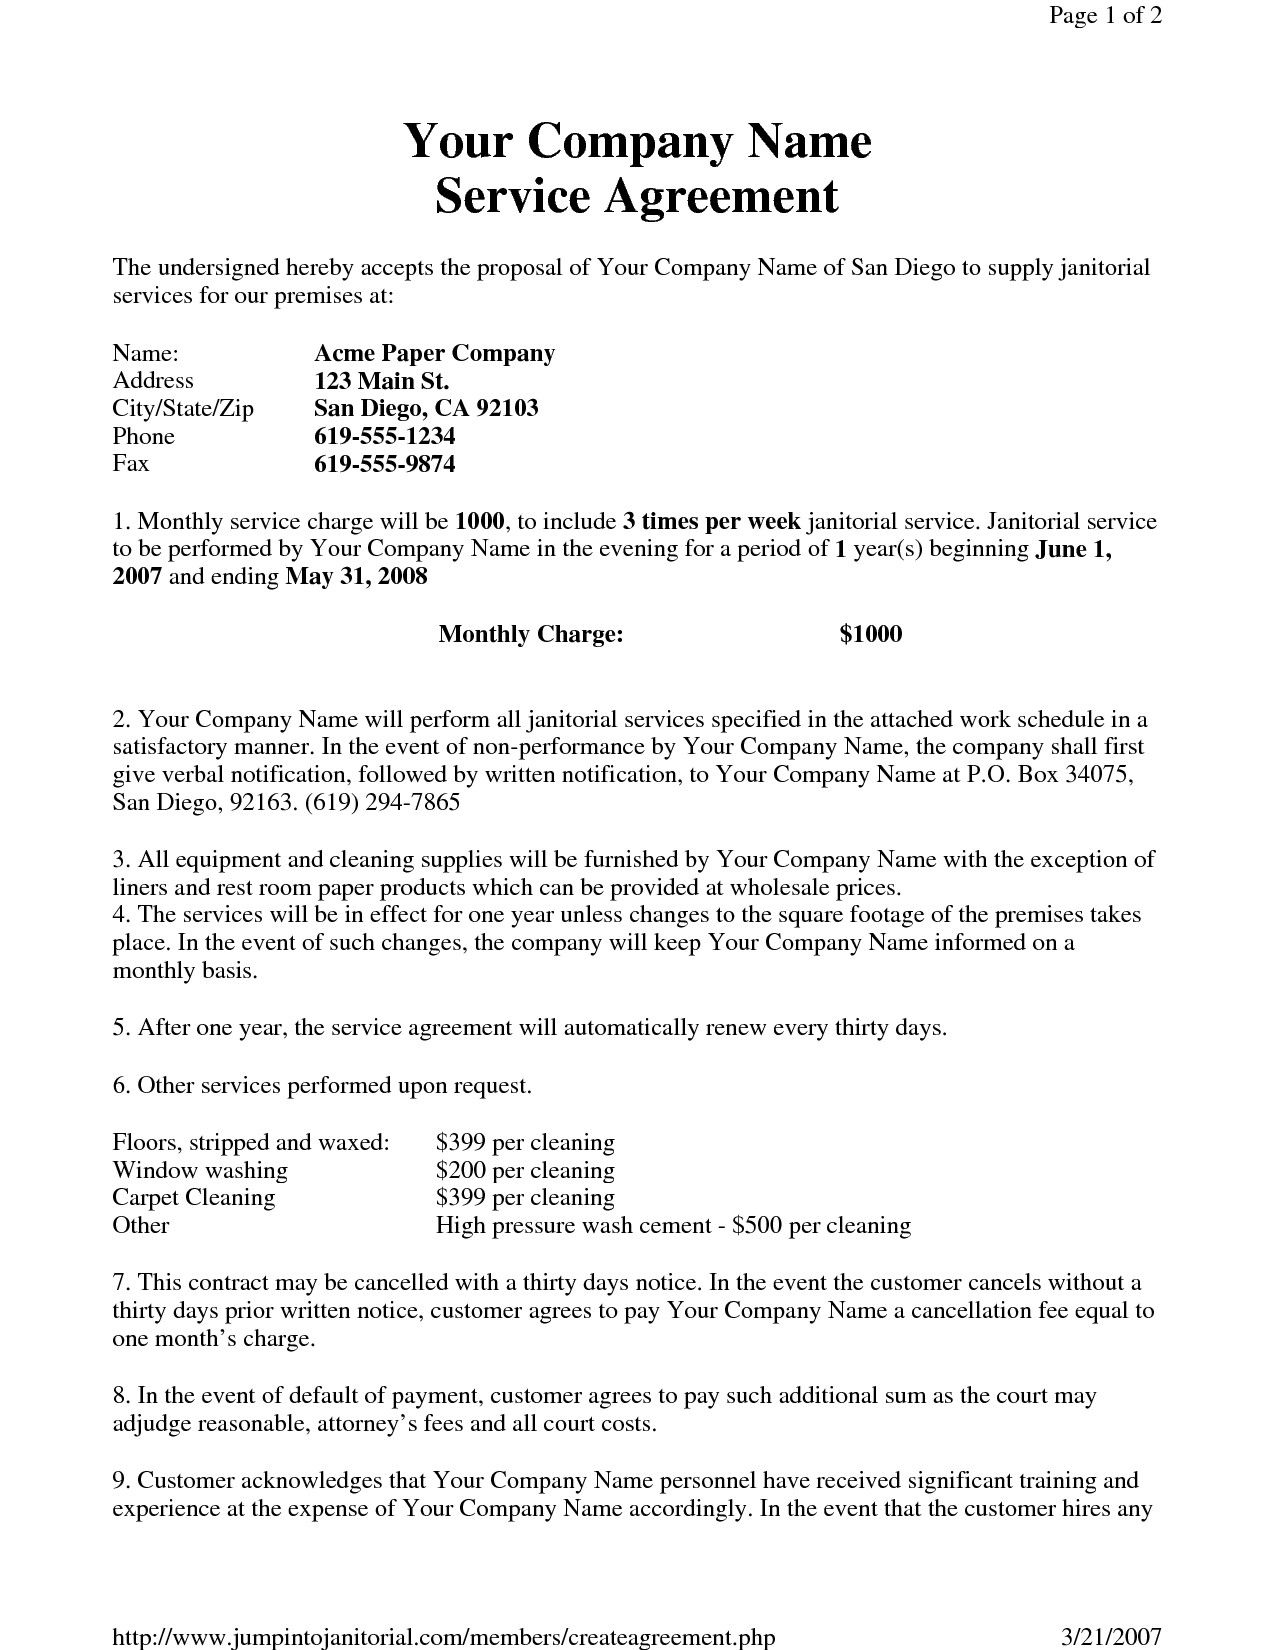 28 Janitorial Services Contract Template In With